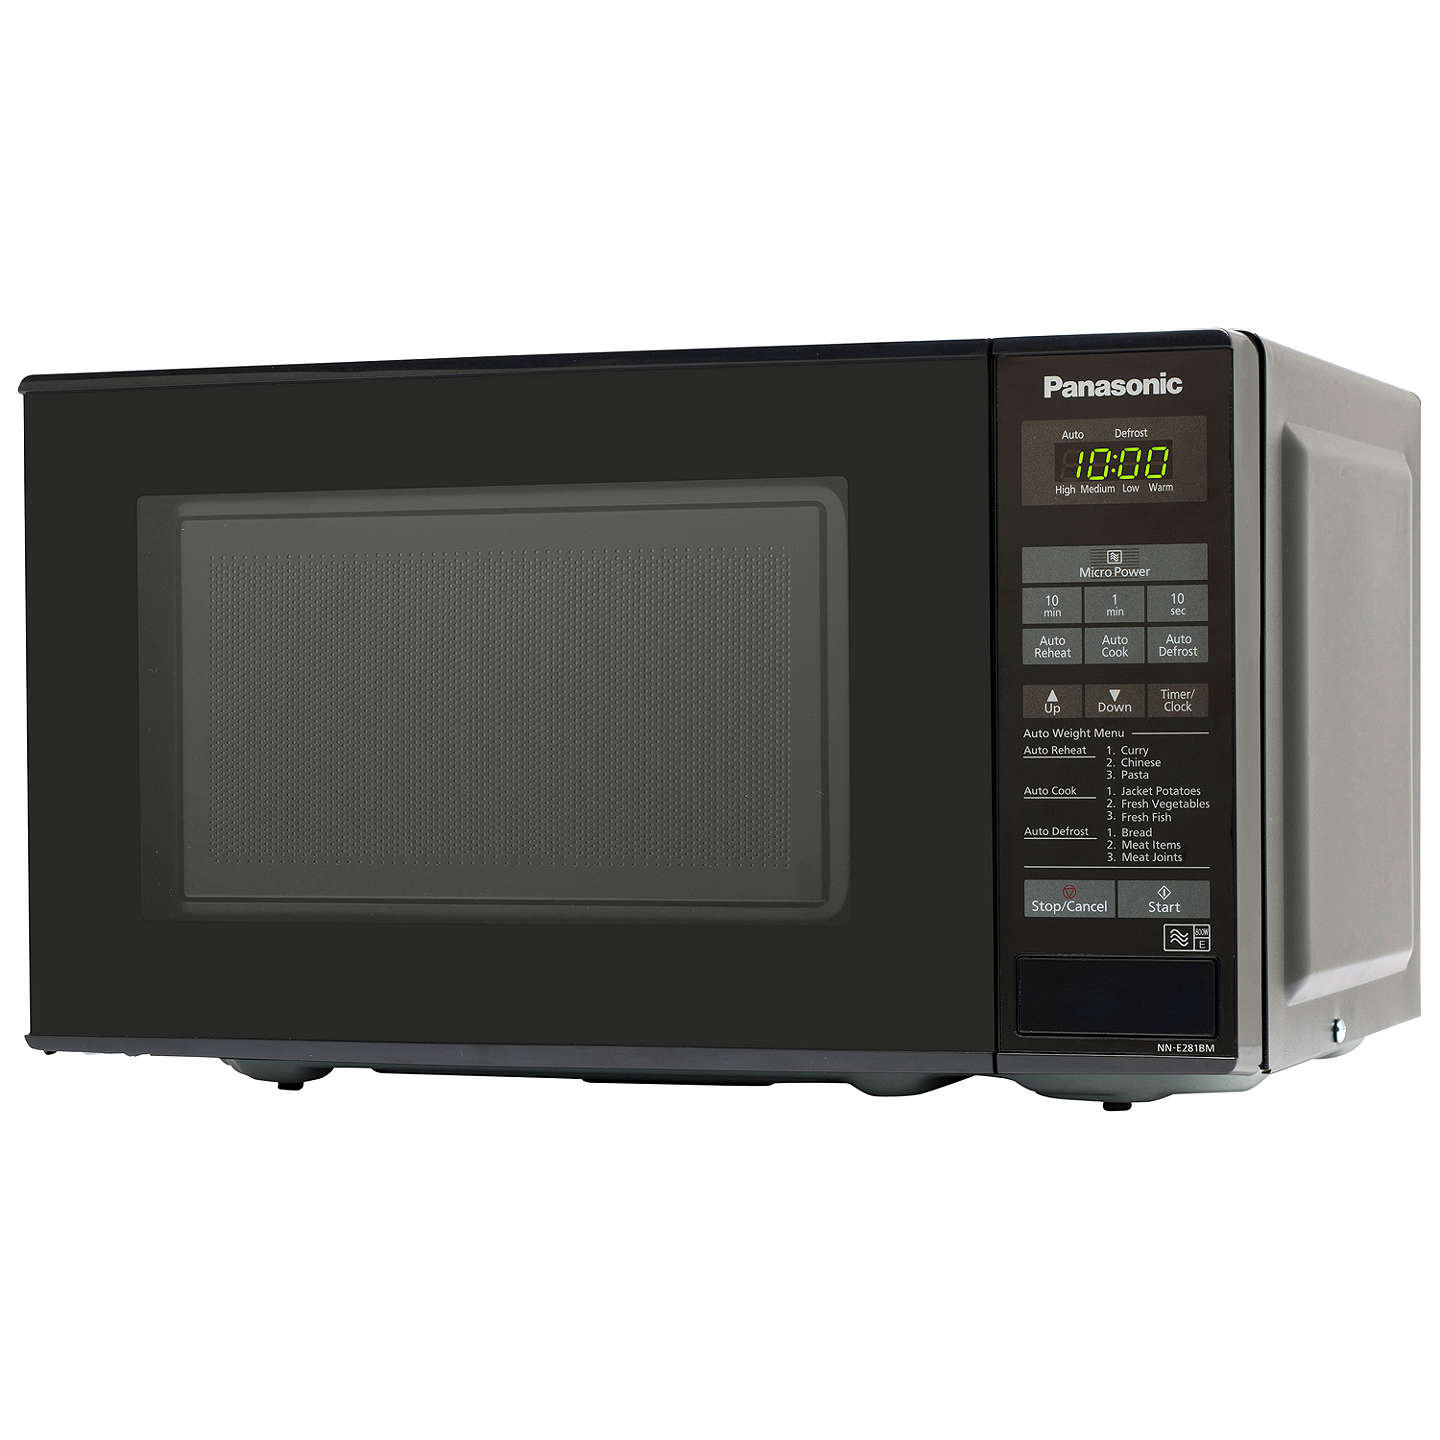 BuyPanasonic NN-E281BMBPQ Microwave Oven, Black Online at johnlewis.com